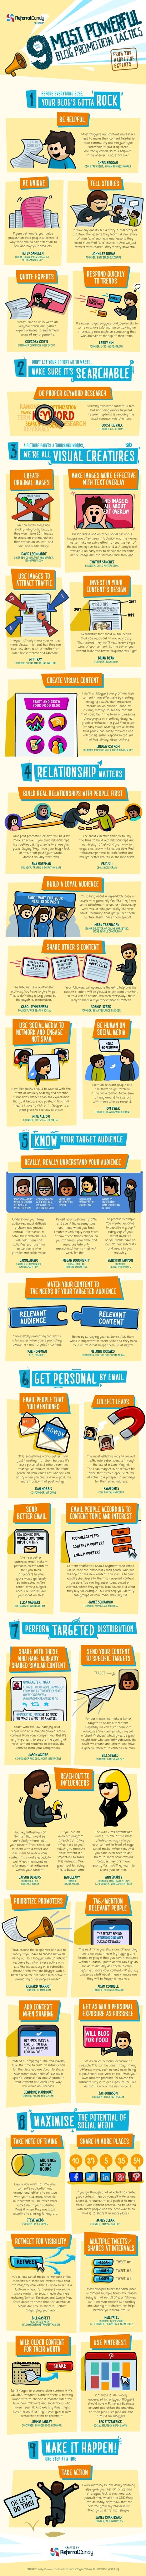 How to Promote Your Stories Effectively #Infographic | Educational Use of Social Media | Scoop.it